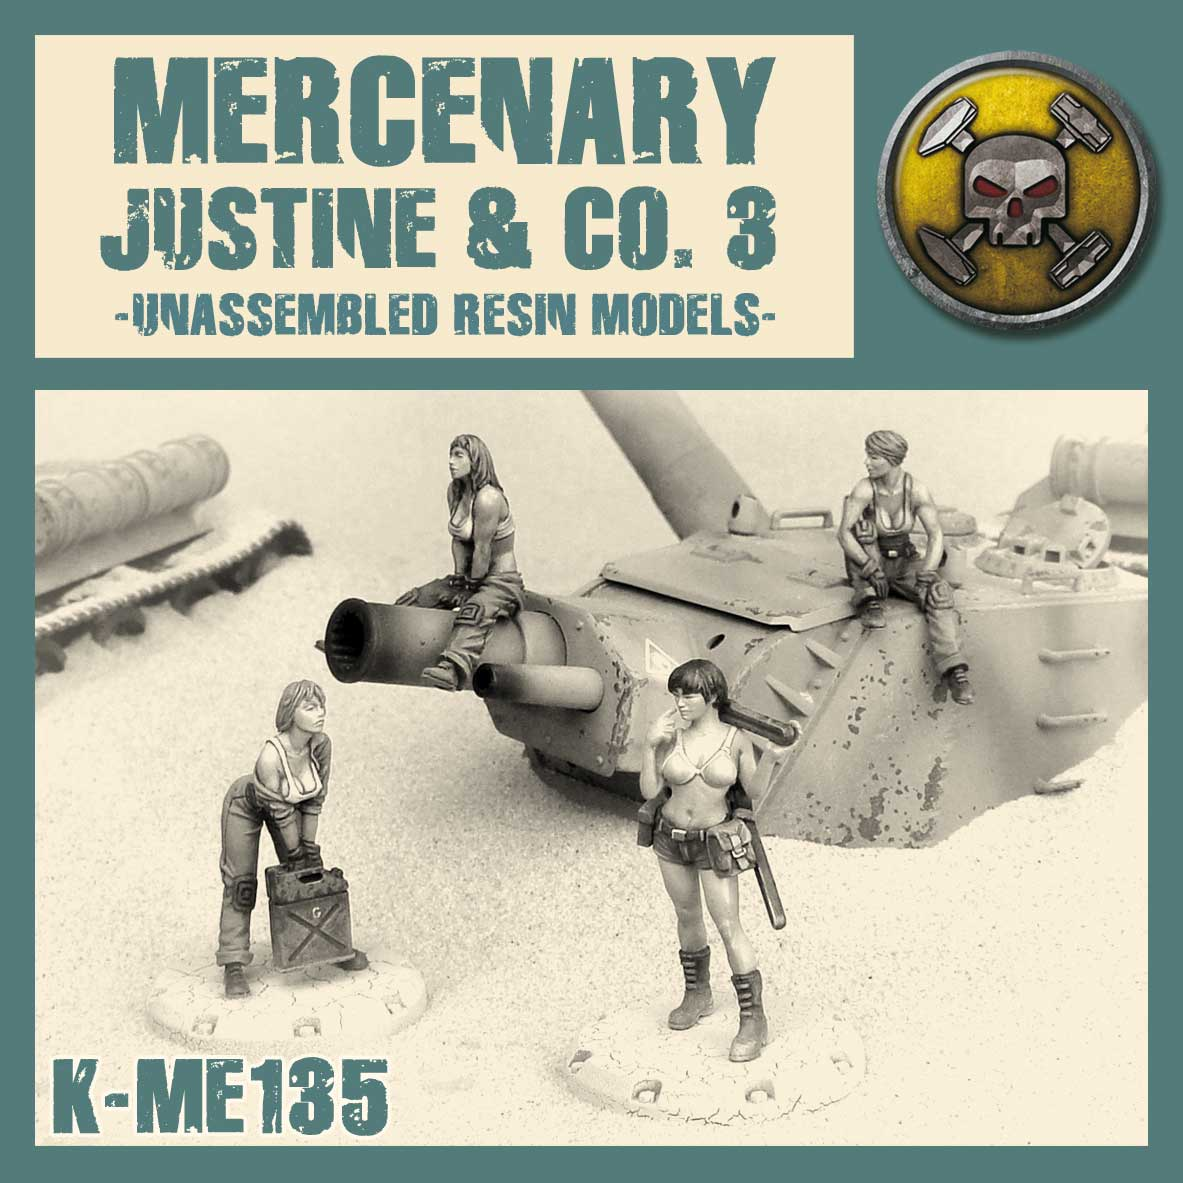 Justine & Co. Maintenance Contractors #3 Kit